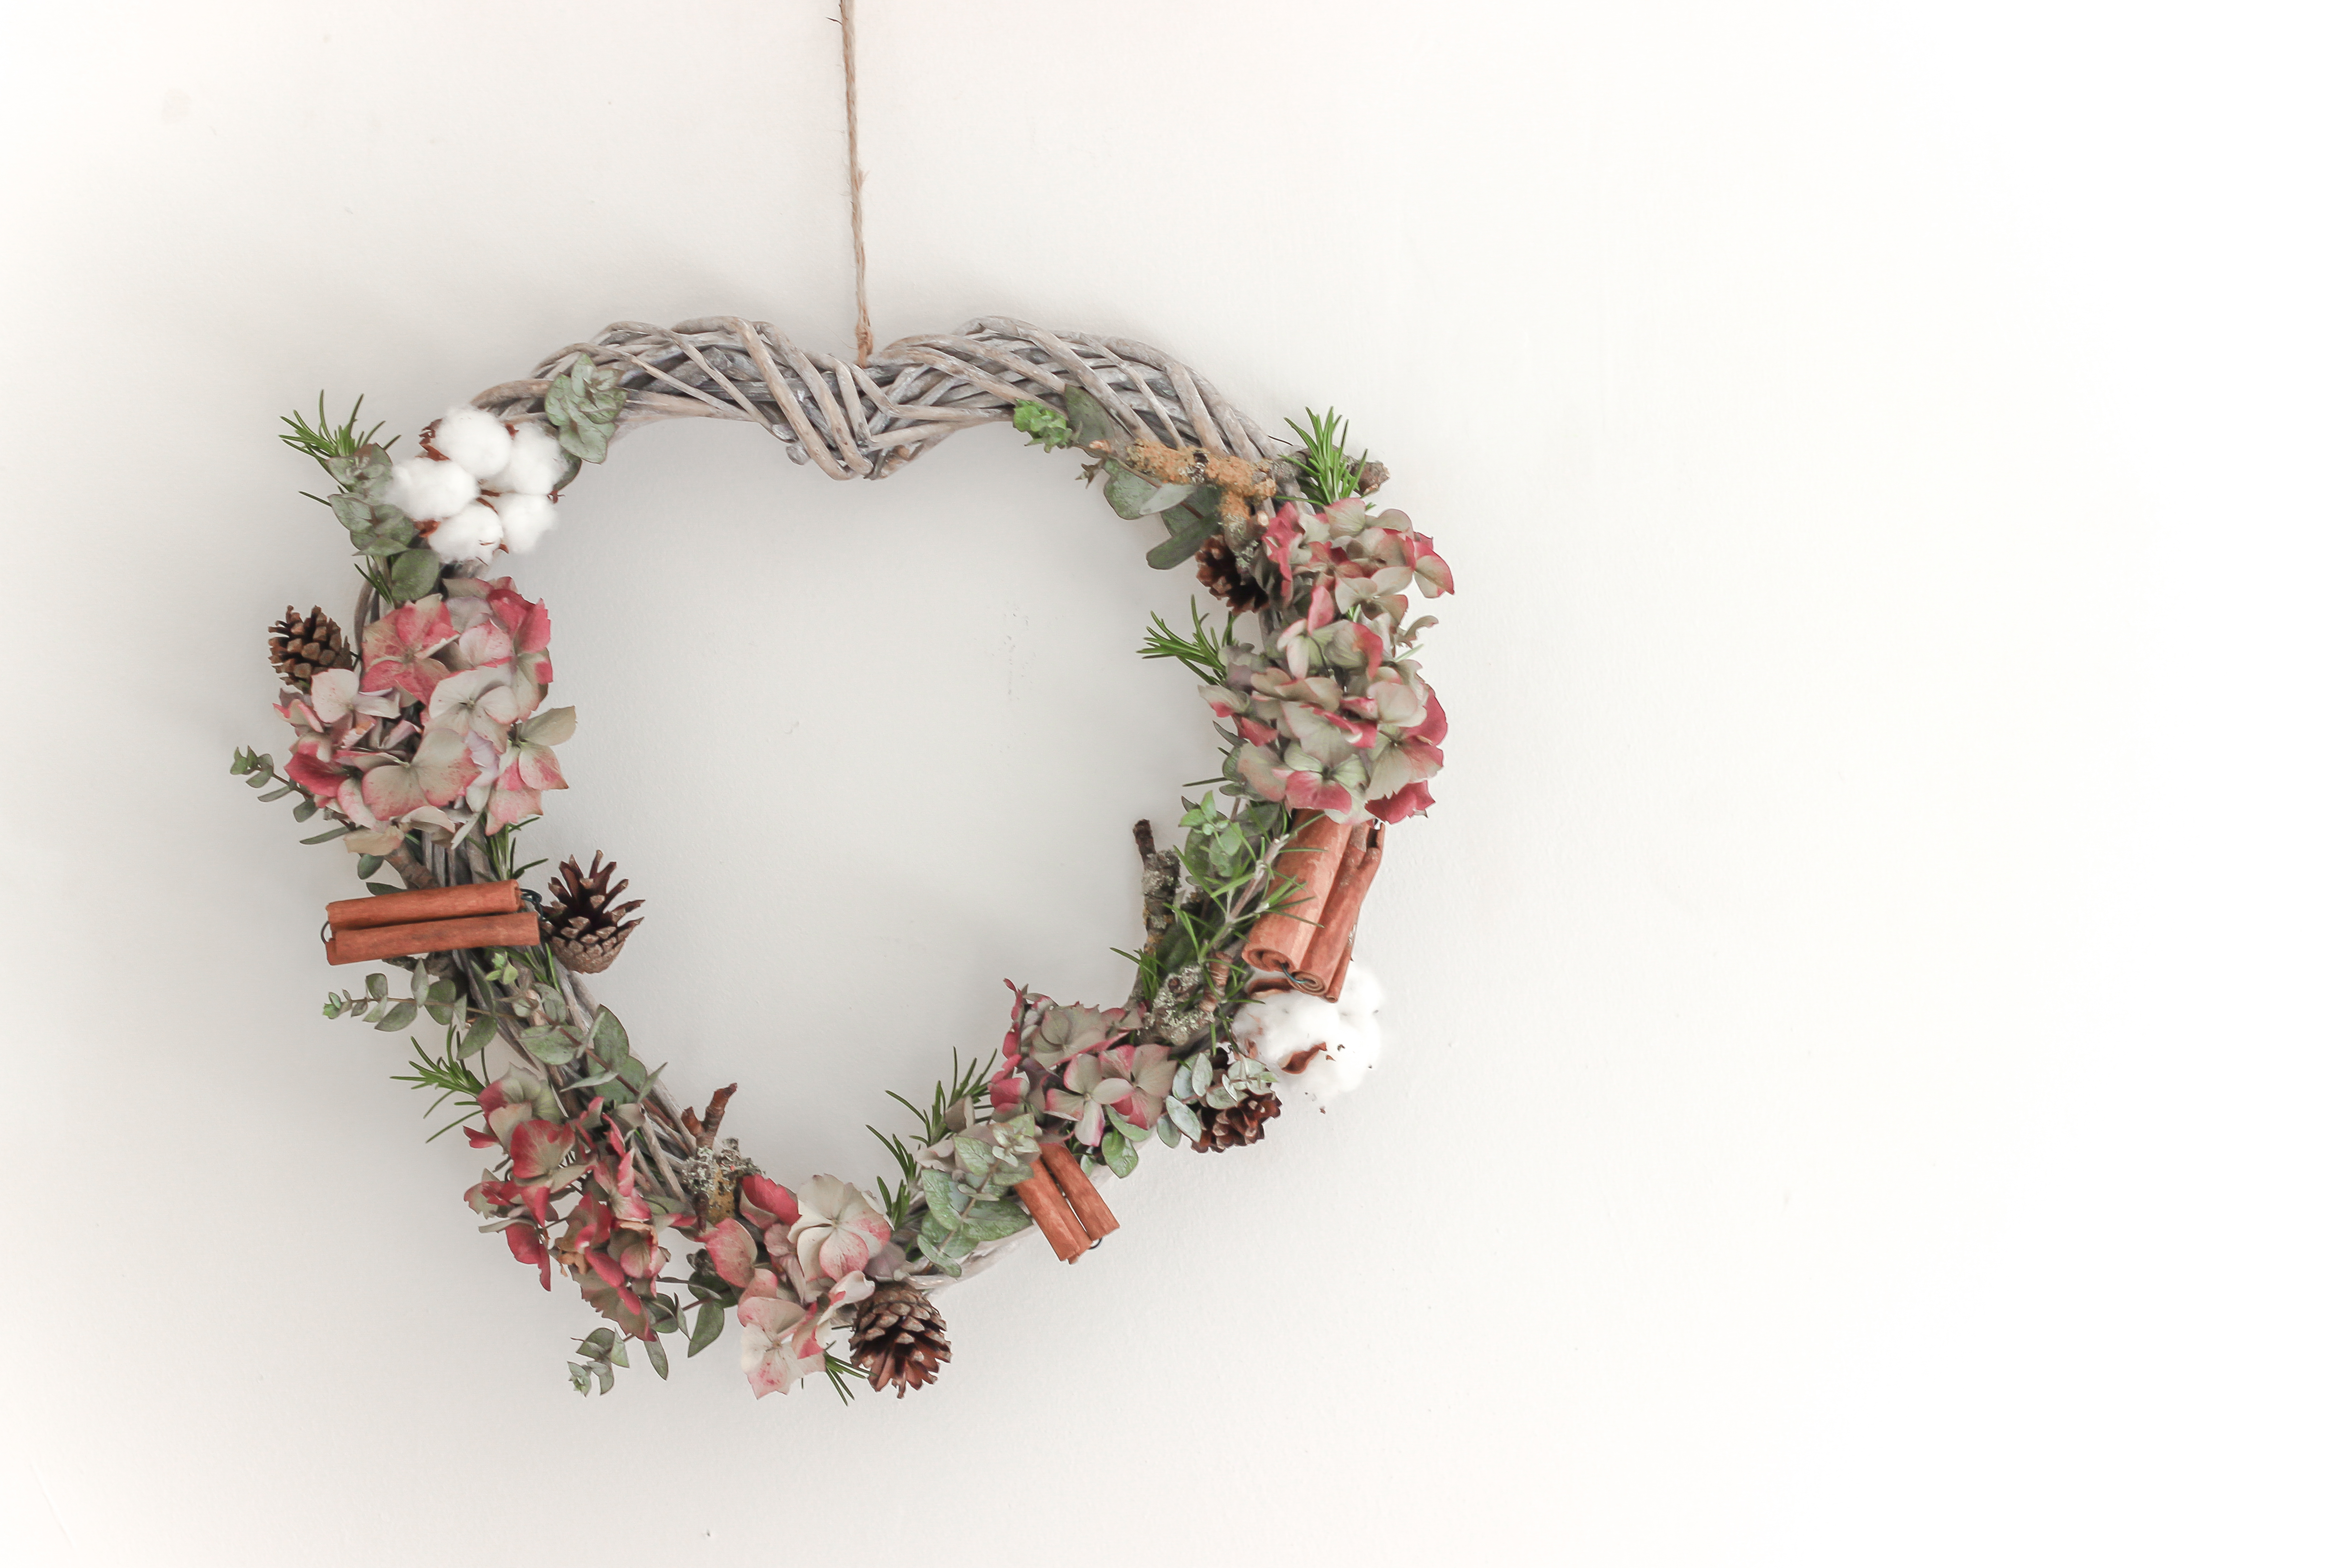 22 Christmas Wreath Ideas for Your Home - The LuxPad